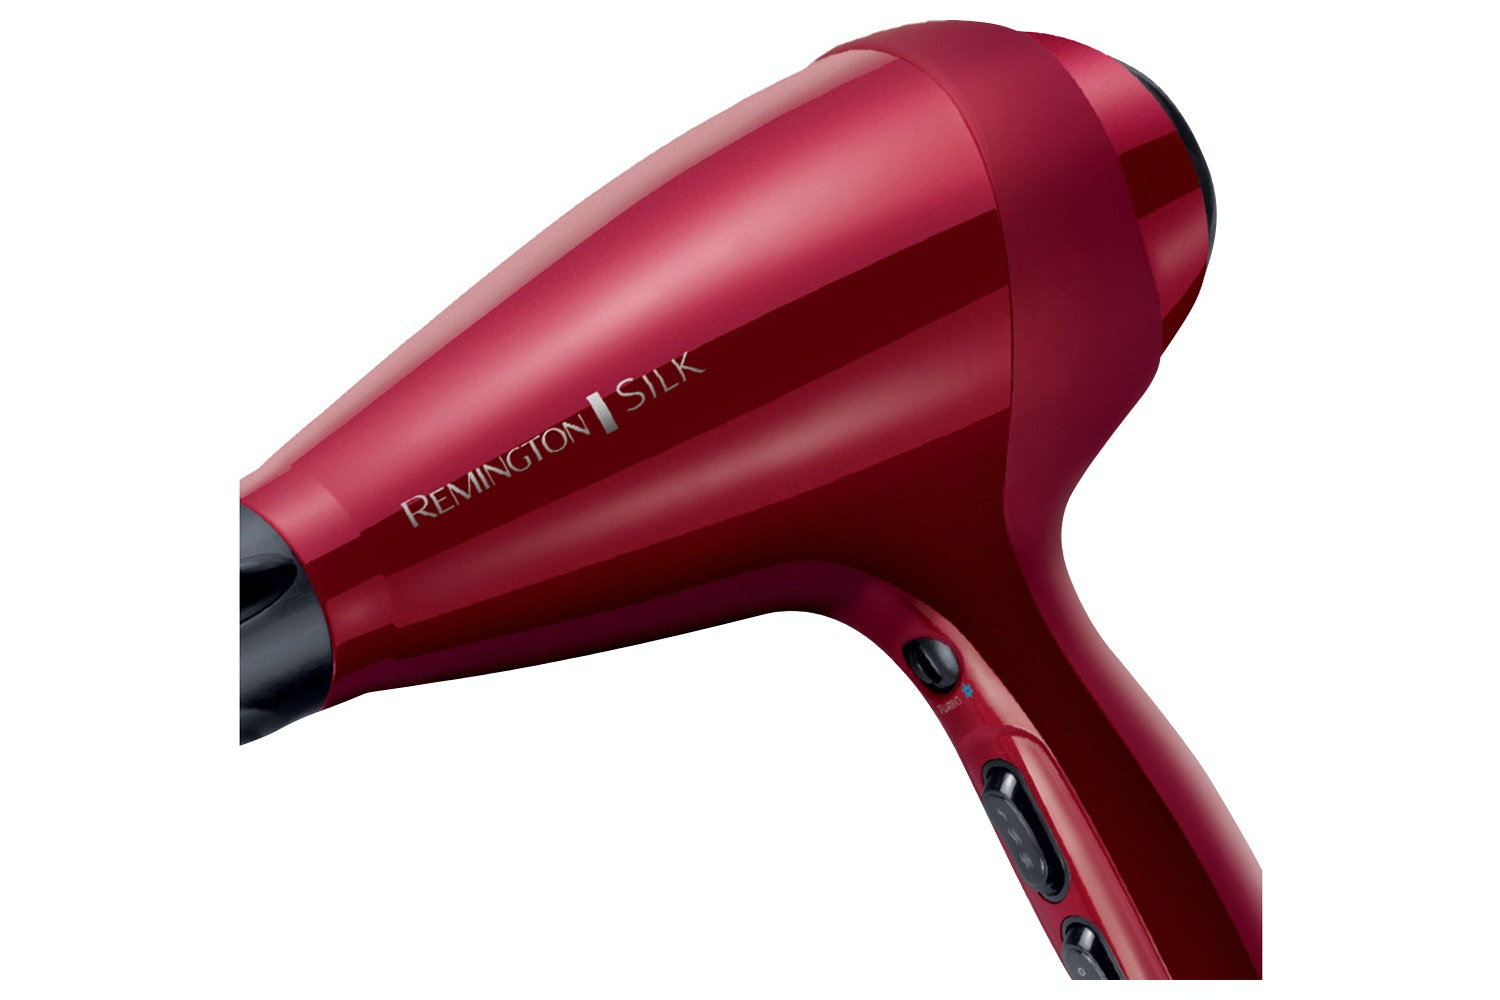 Remington Silk Professional Hair Dryer | AC9096